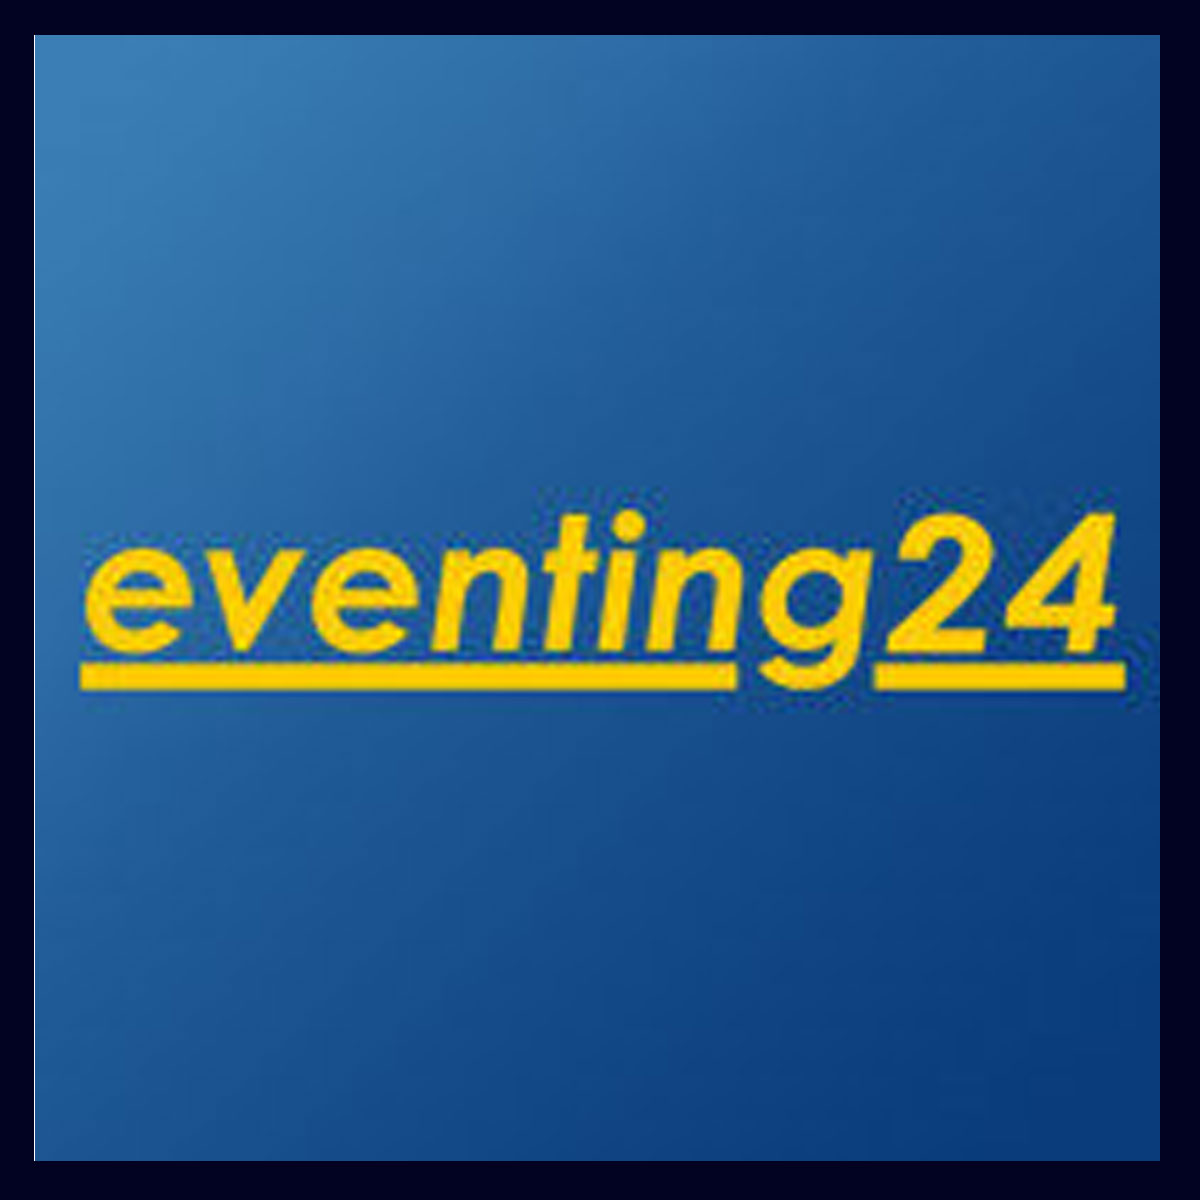 EVENTING24